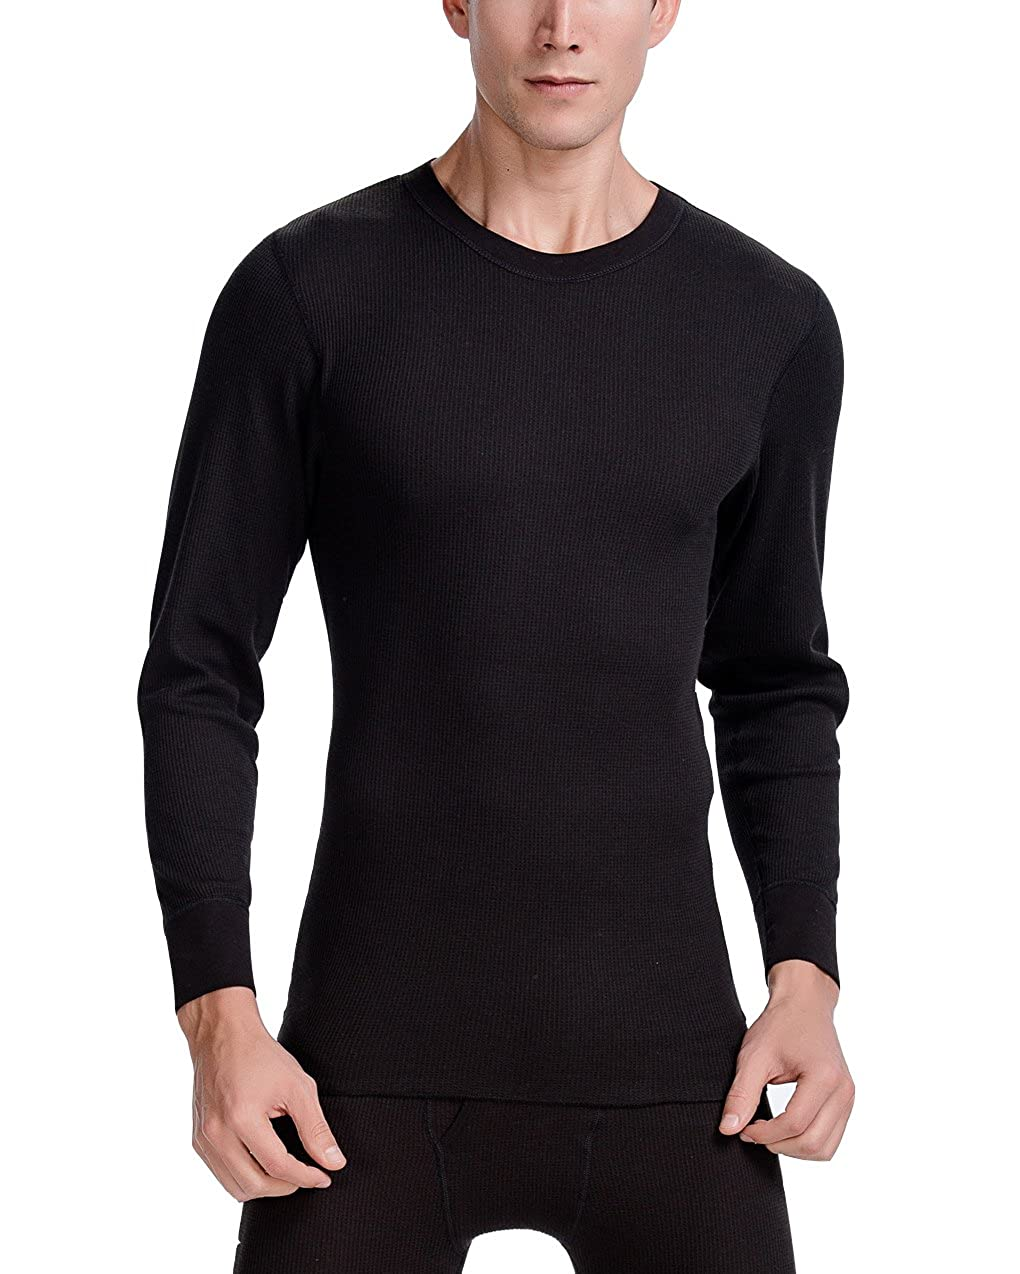 CYZ Men's Mid Weight Waffle Thermal Long Sleeve Crew Top at Amazon ...